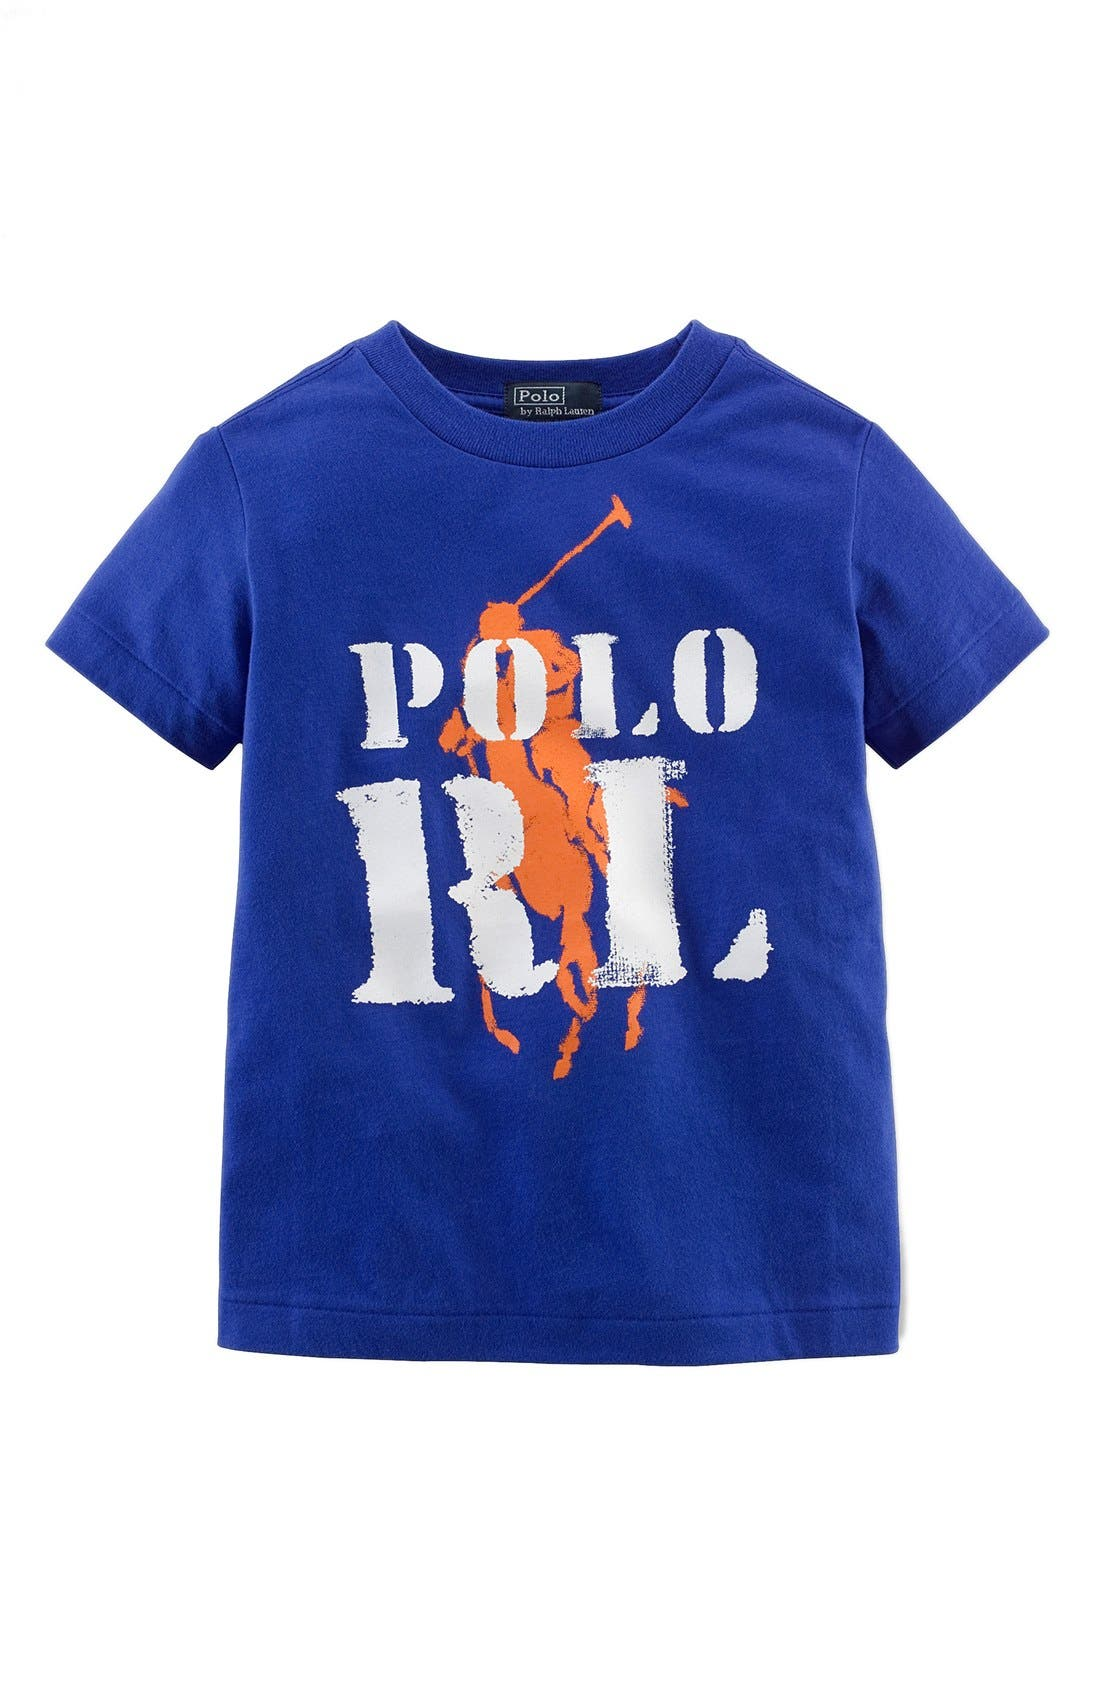 Alternate Image 1 Selected - Ralph Lauren Graphic Print Cotton T-Shirt (Toddler Boys)